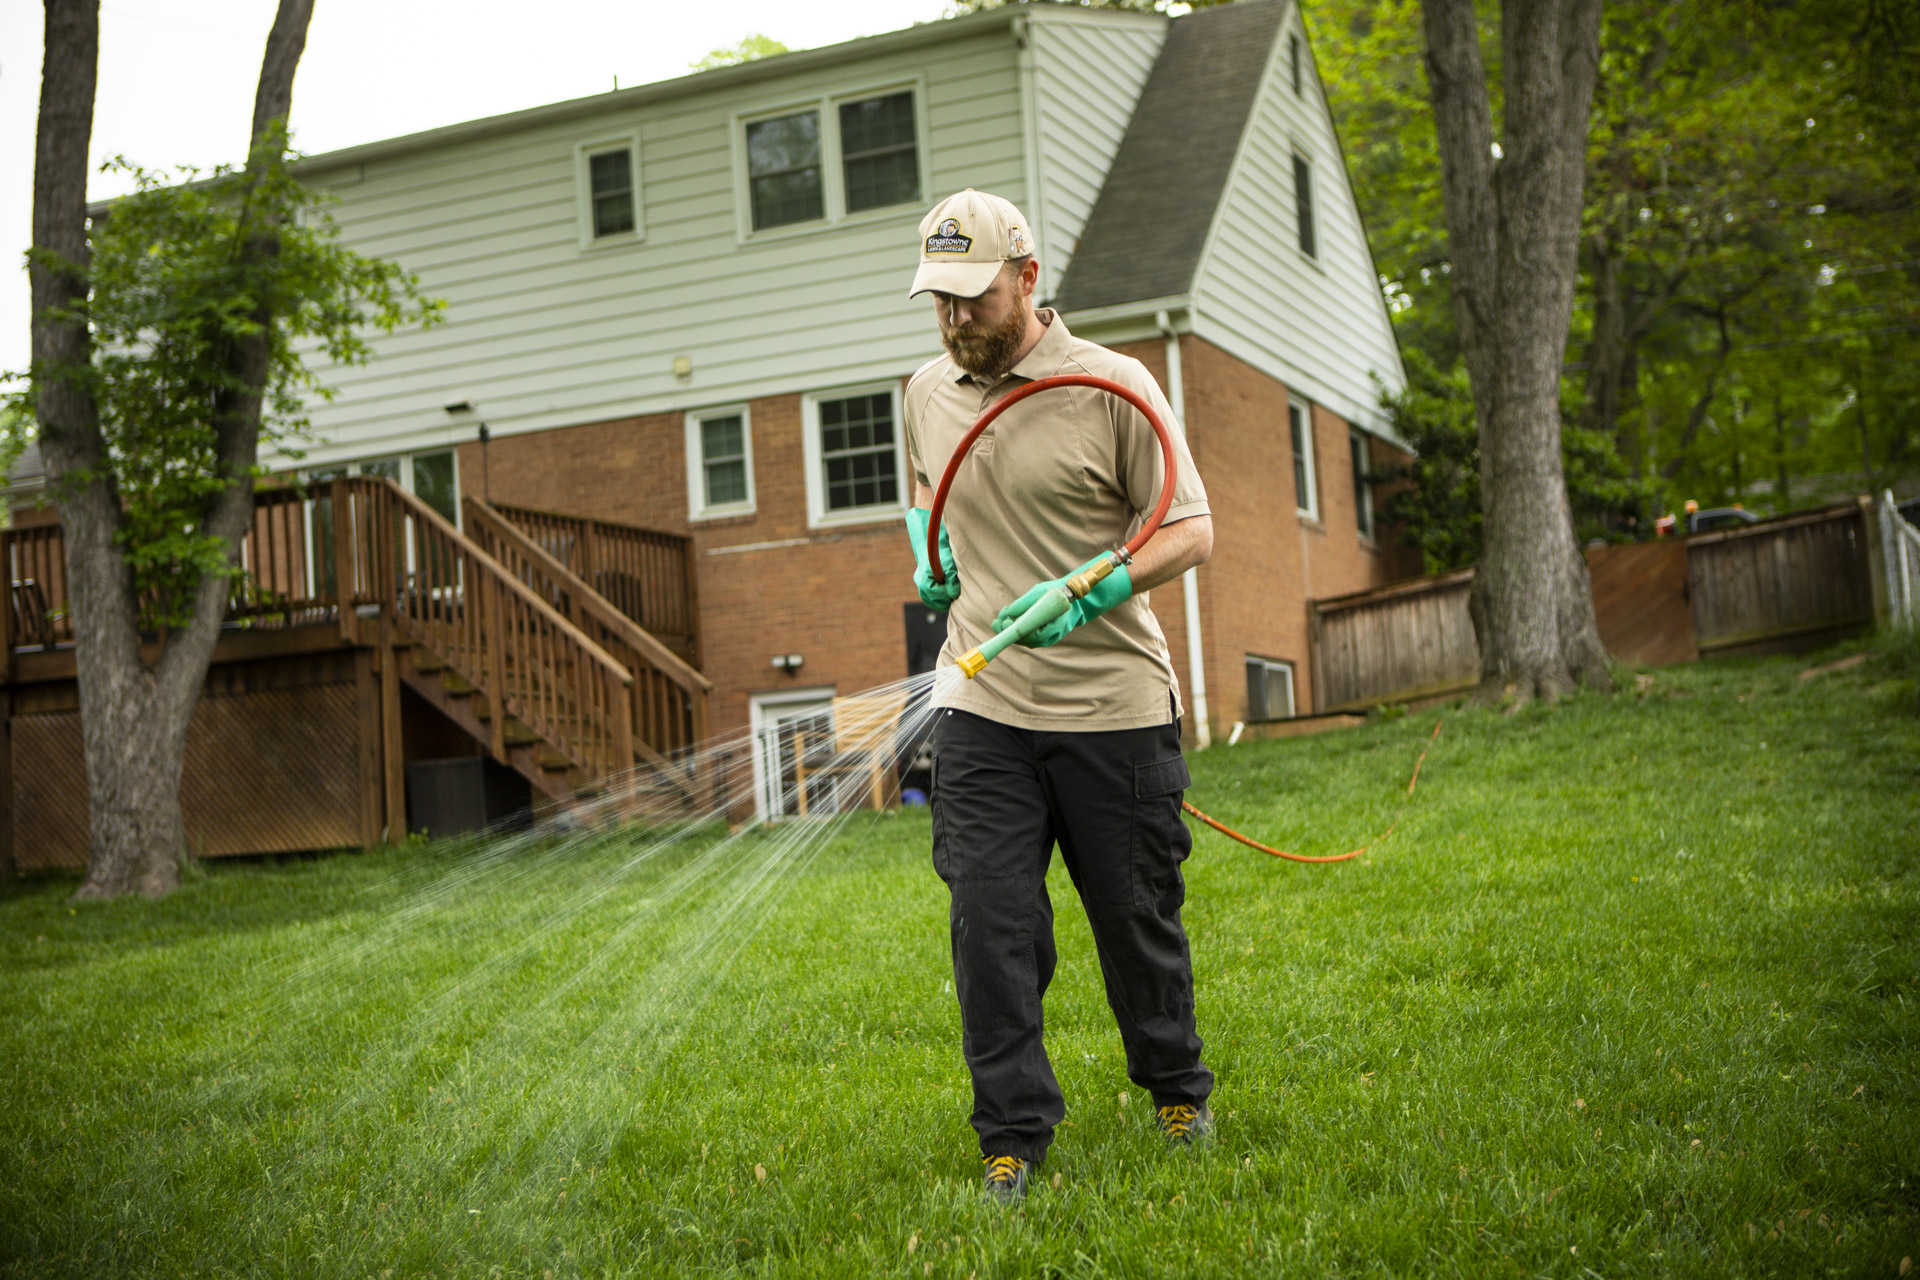 professional lawn care technician spraying lawn